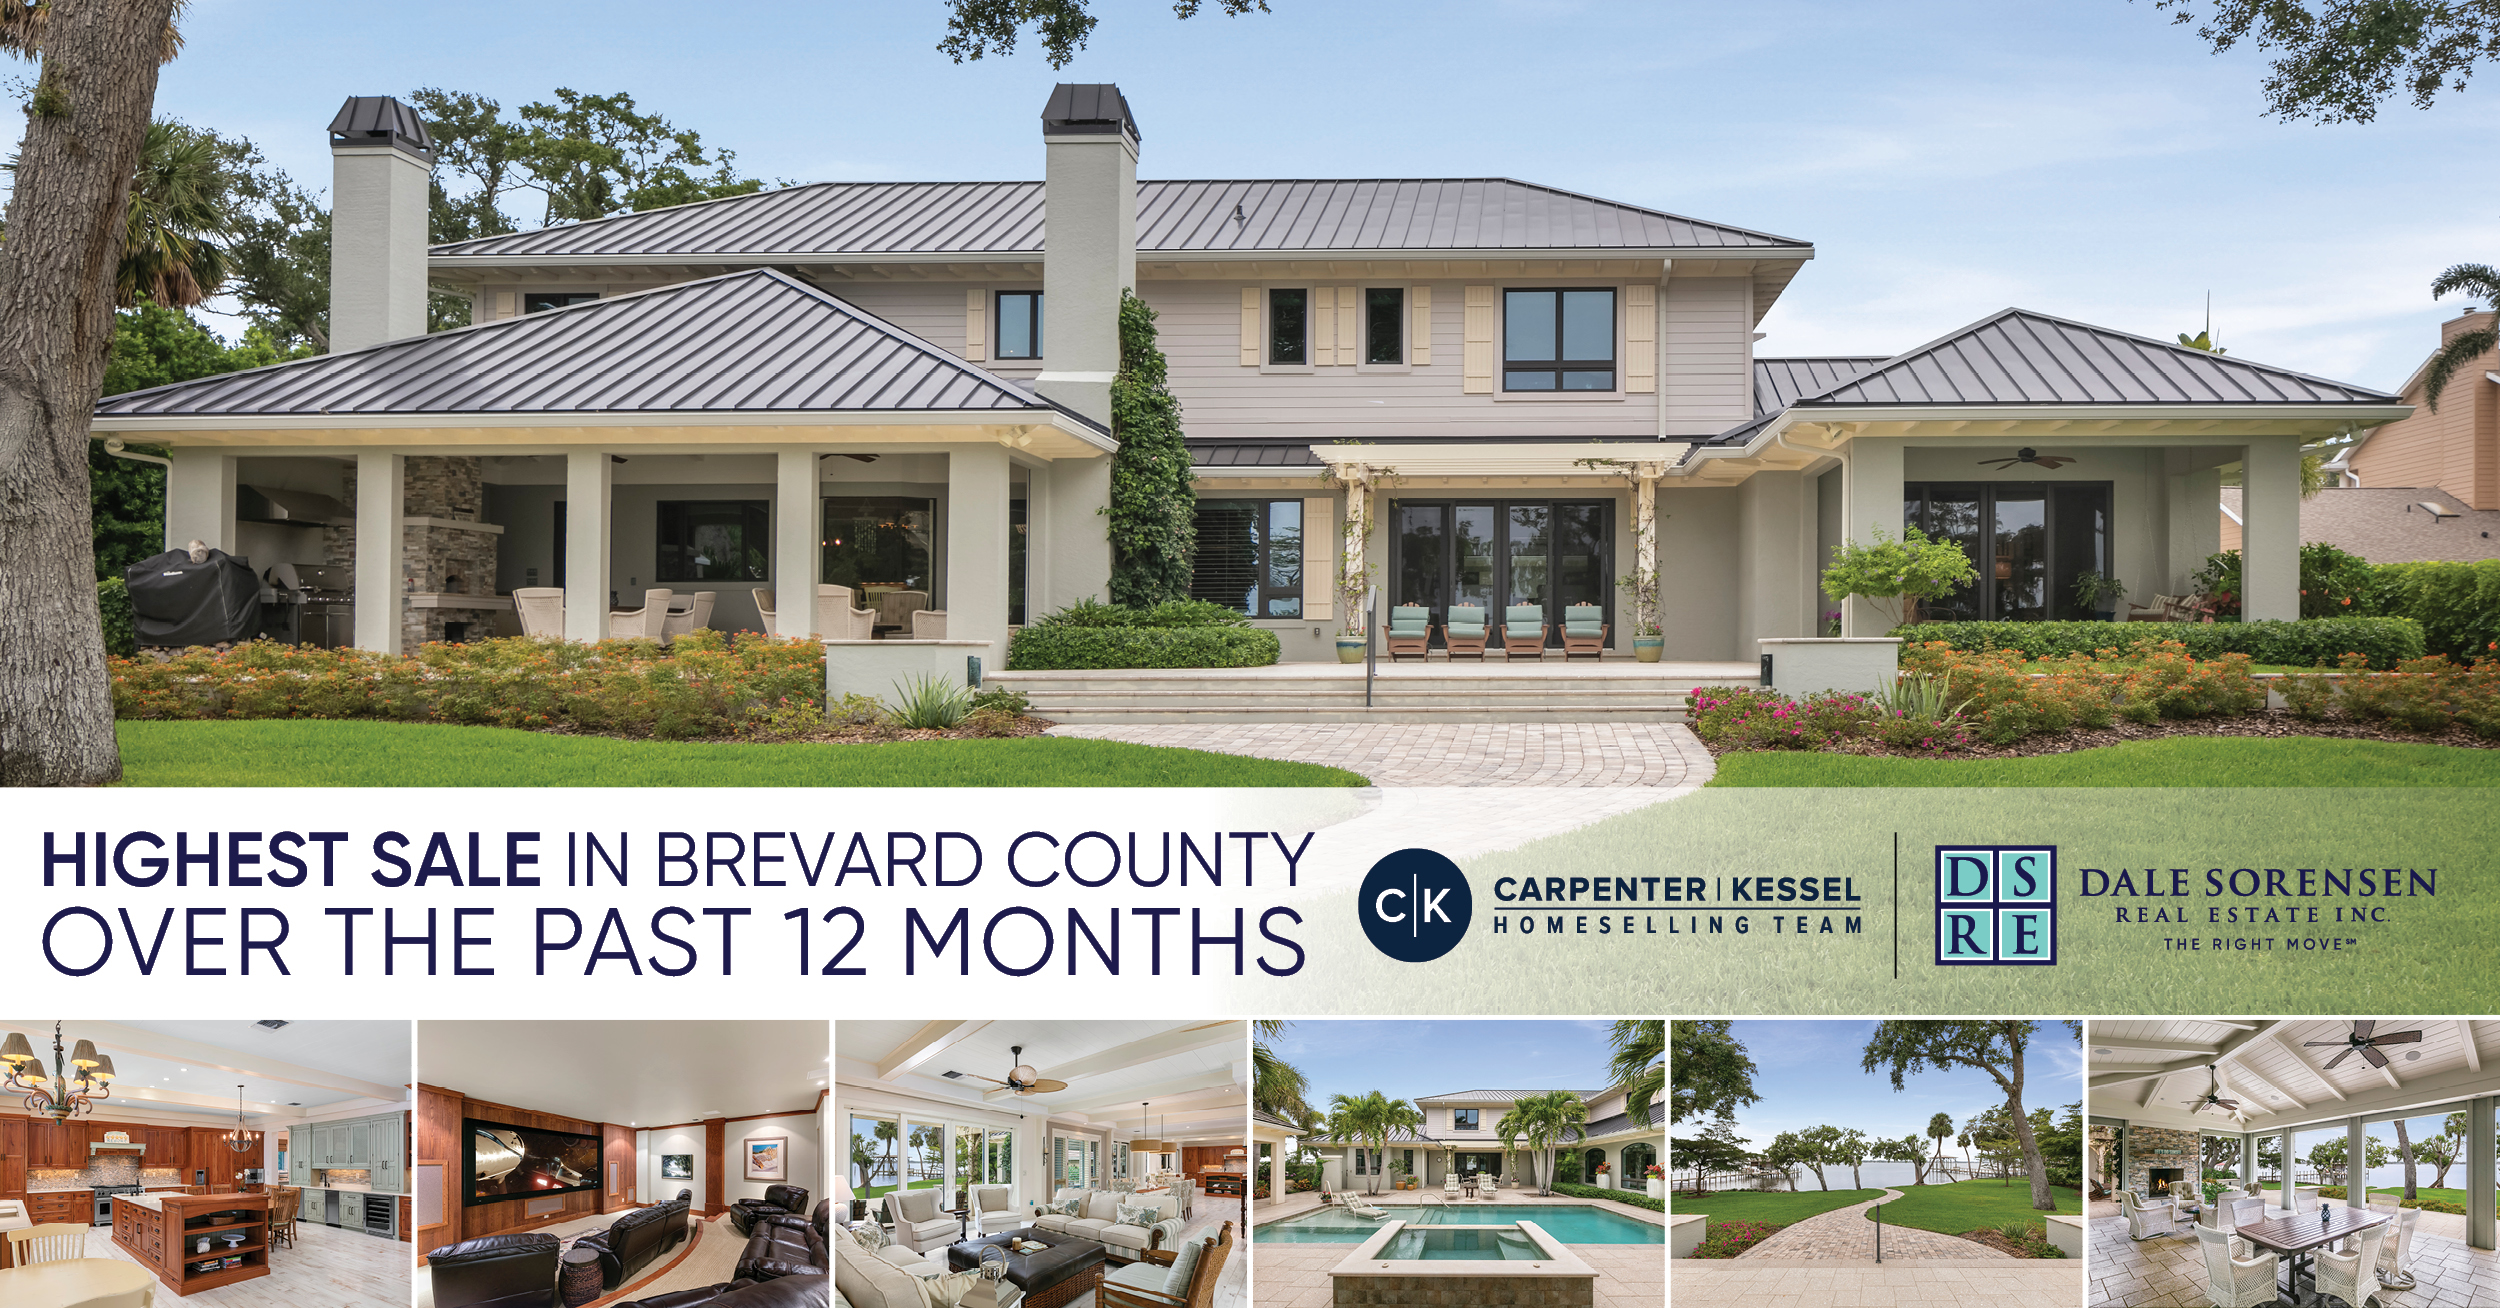 Highest Sale in Brevard County Over the Past 12 Months | Carpenter | Kessel Homeselling Team | Dale Sorensen Real Estate THE RIGHT MOVE